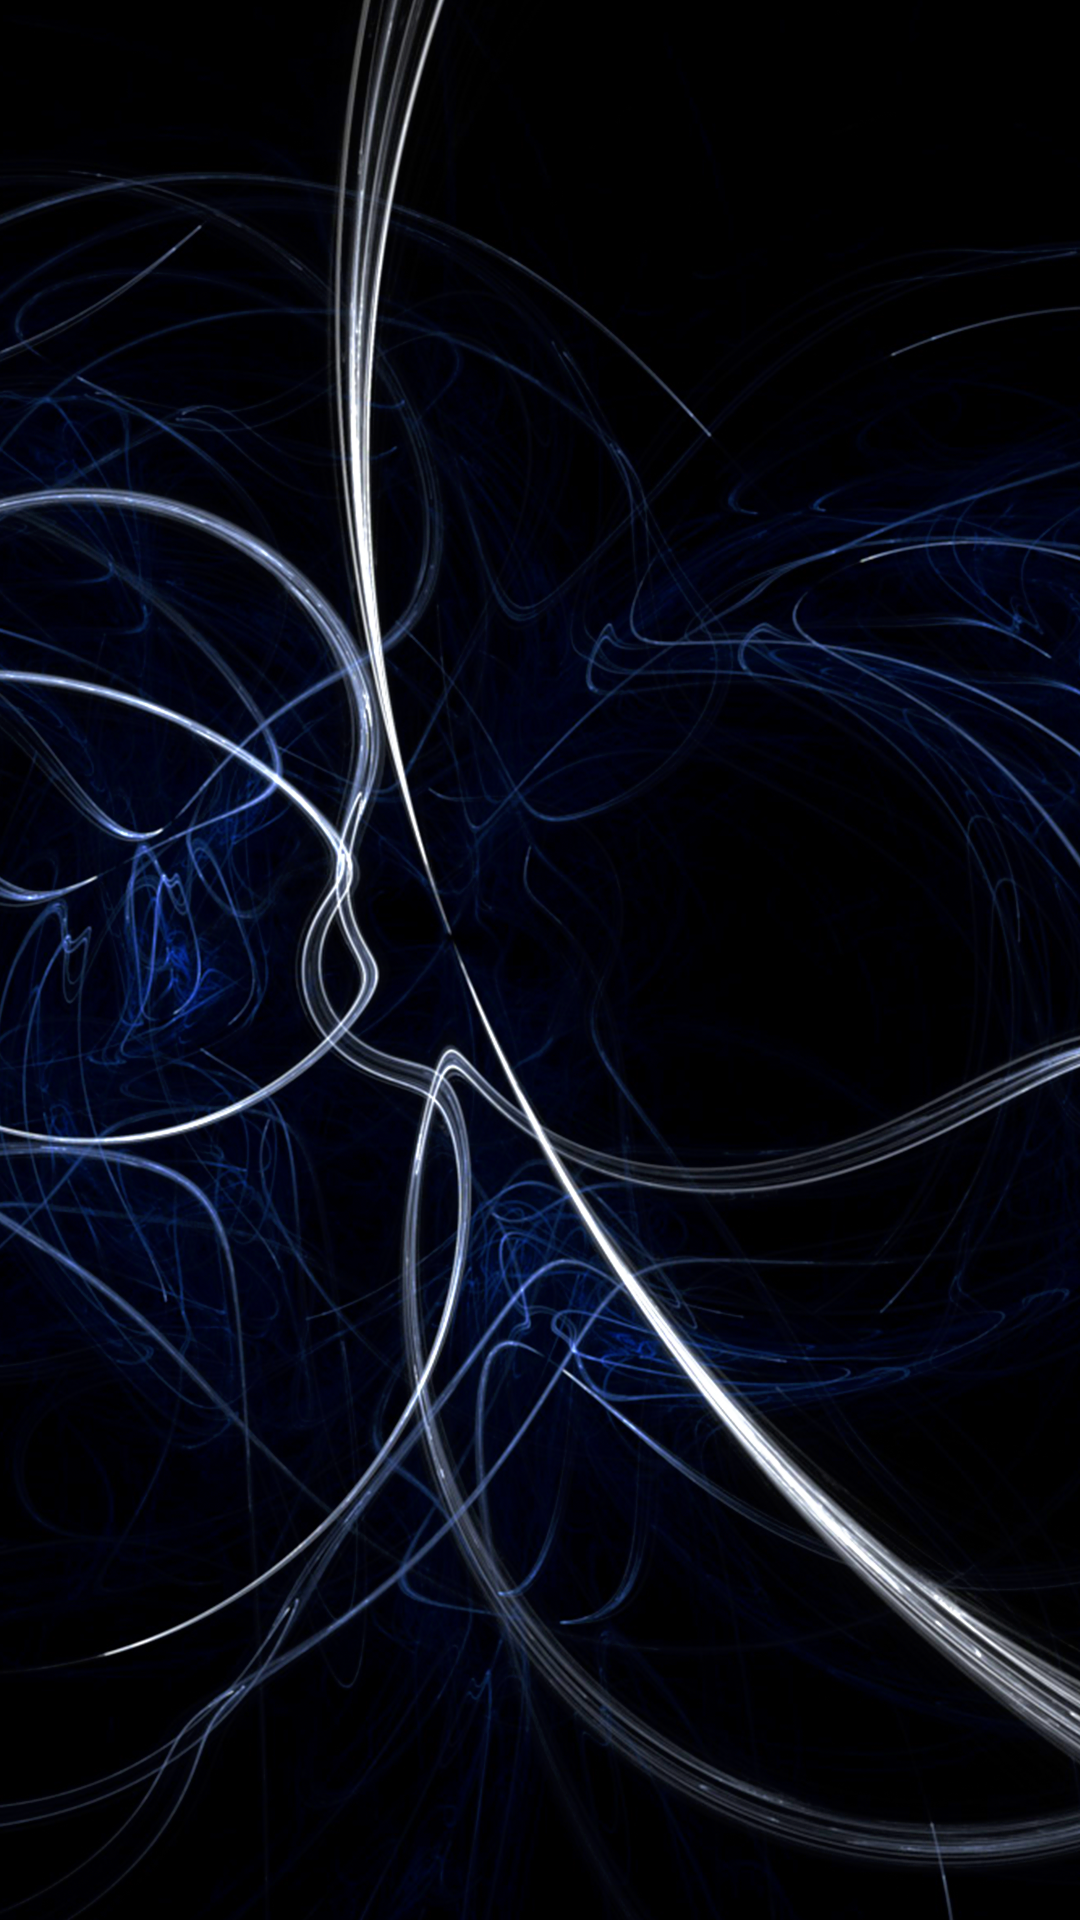 free hd blue steel iphone wallpaper for download 0336